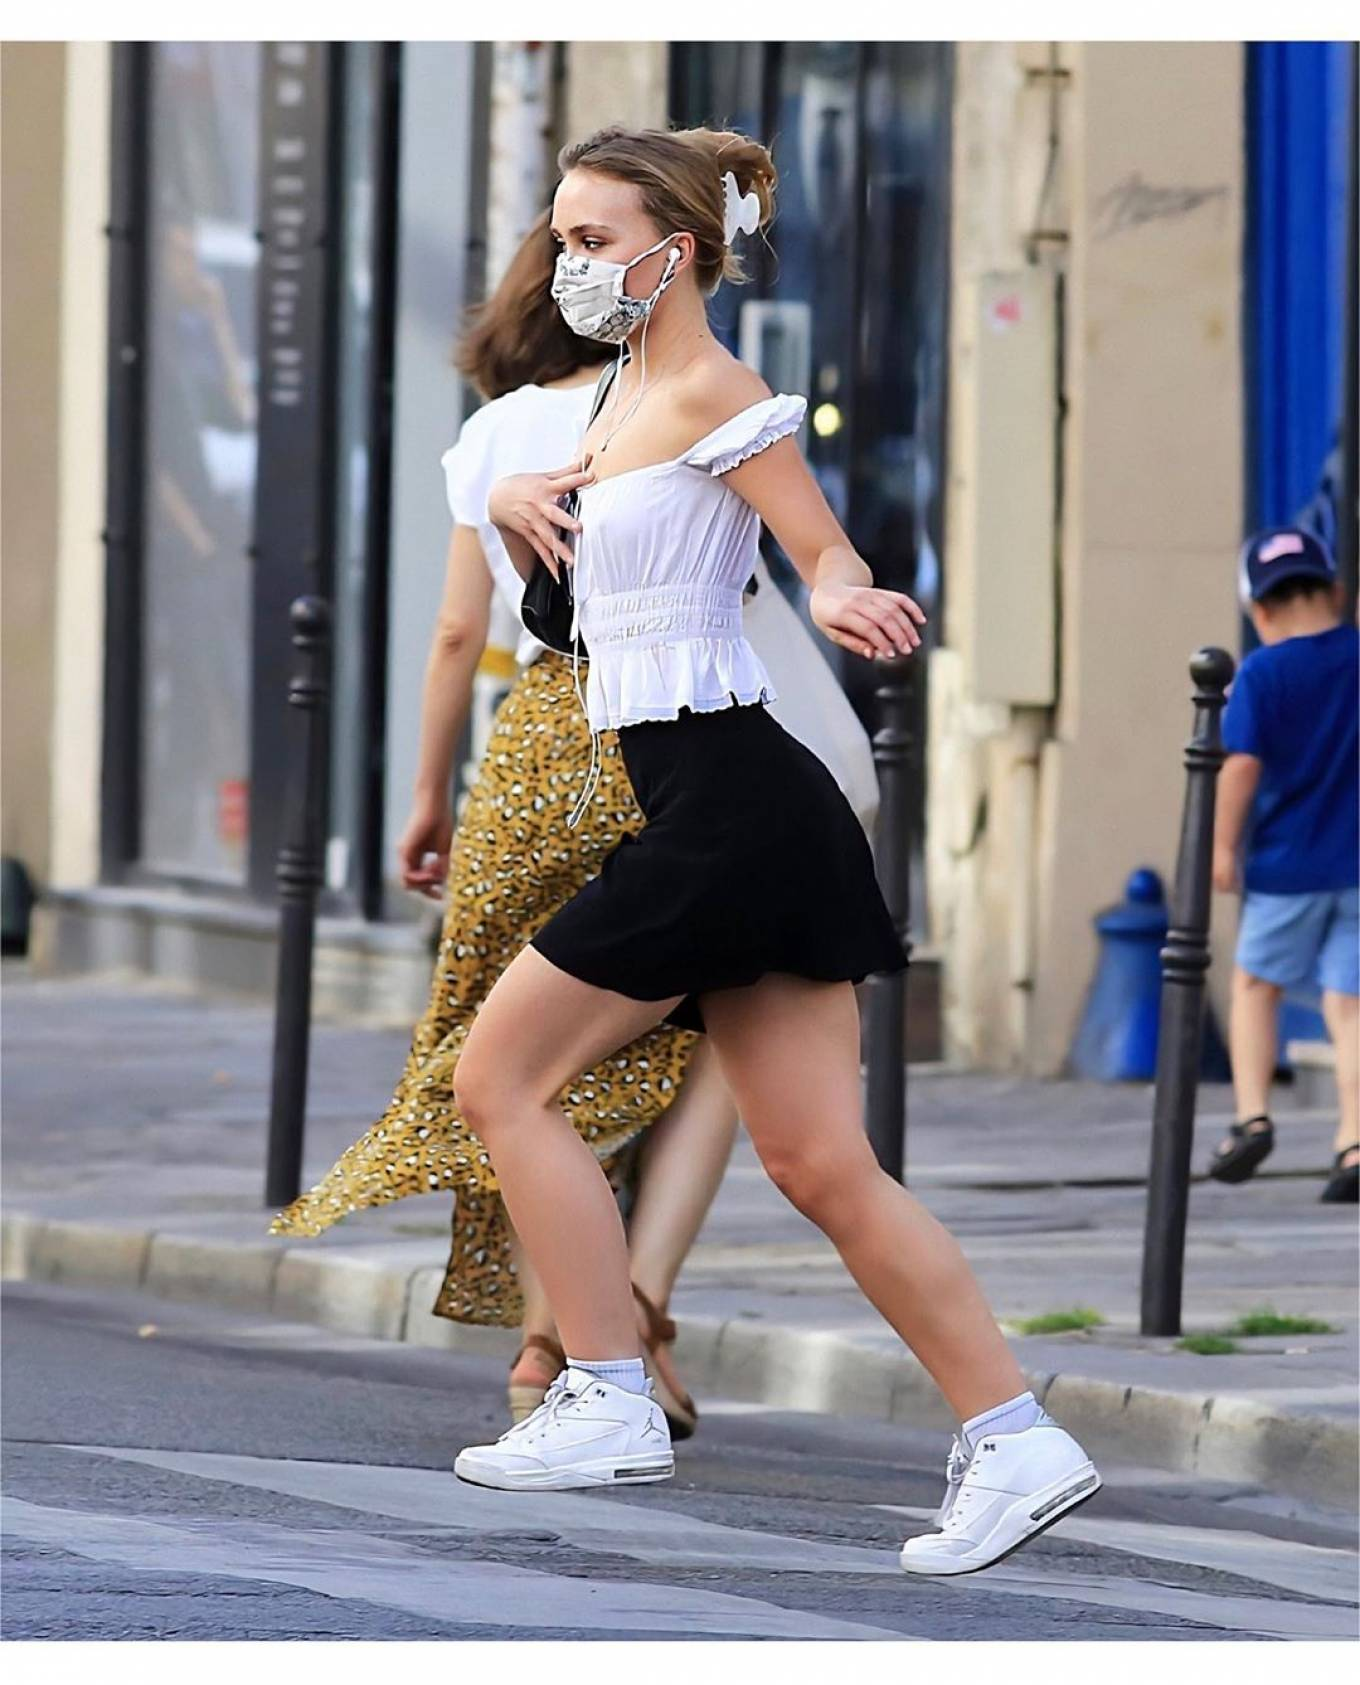 Lily-Rose Depp in Mini Skirt - Out in Paris